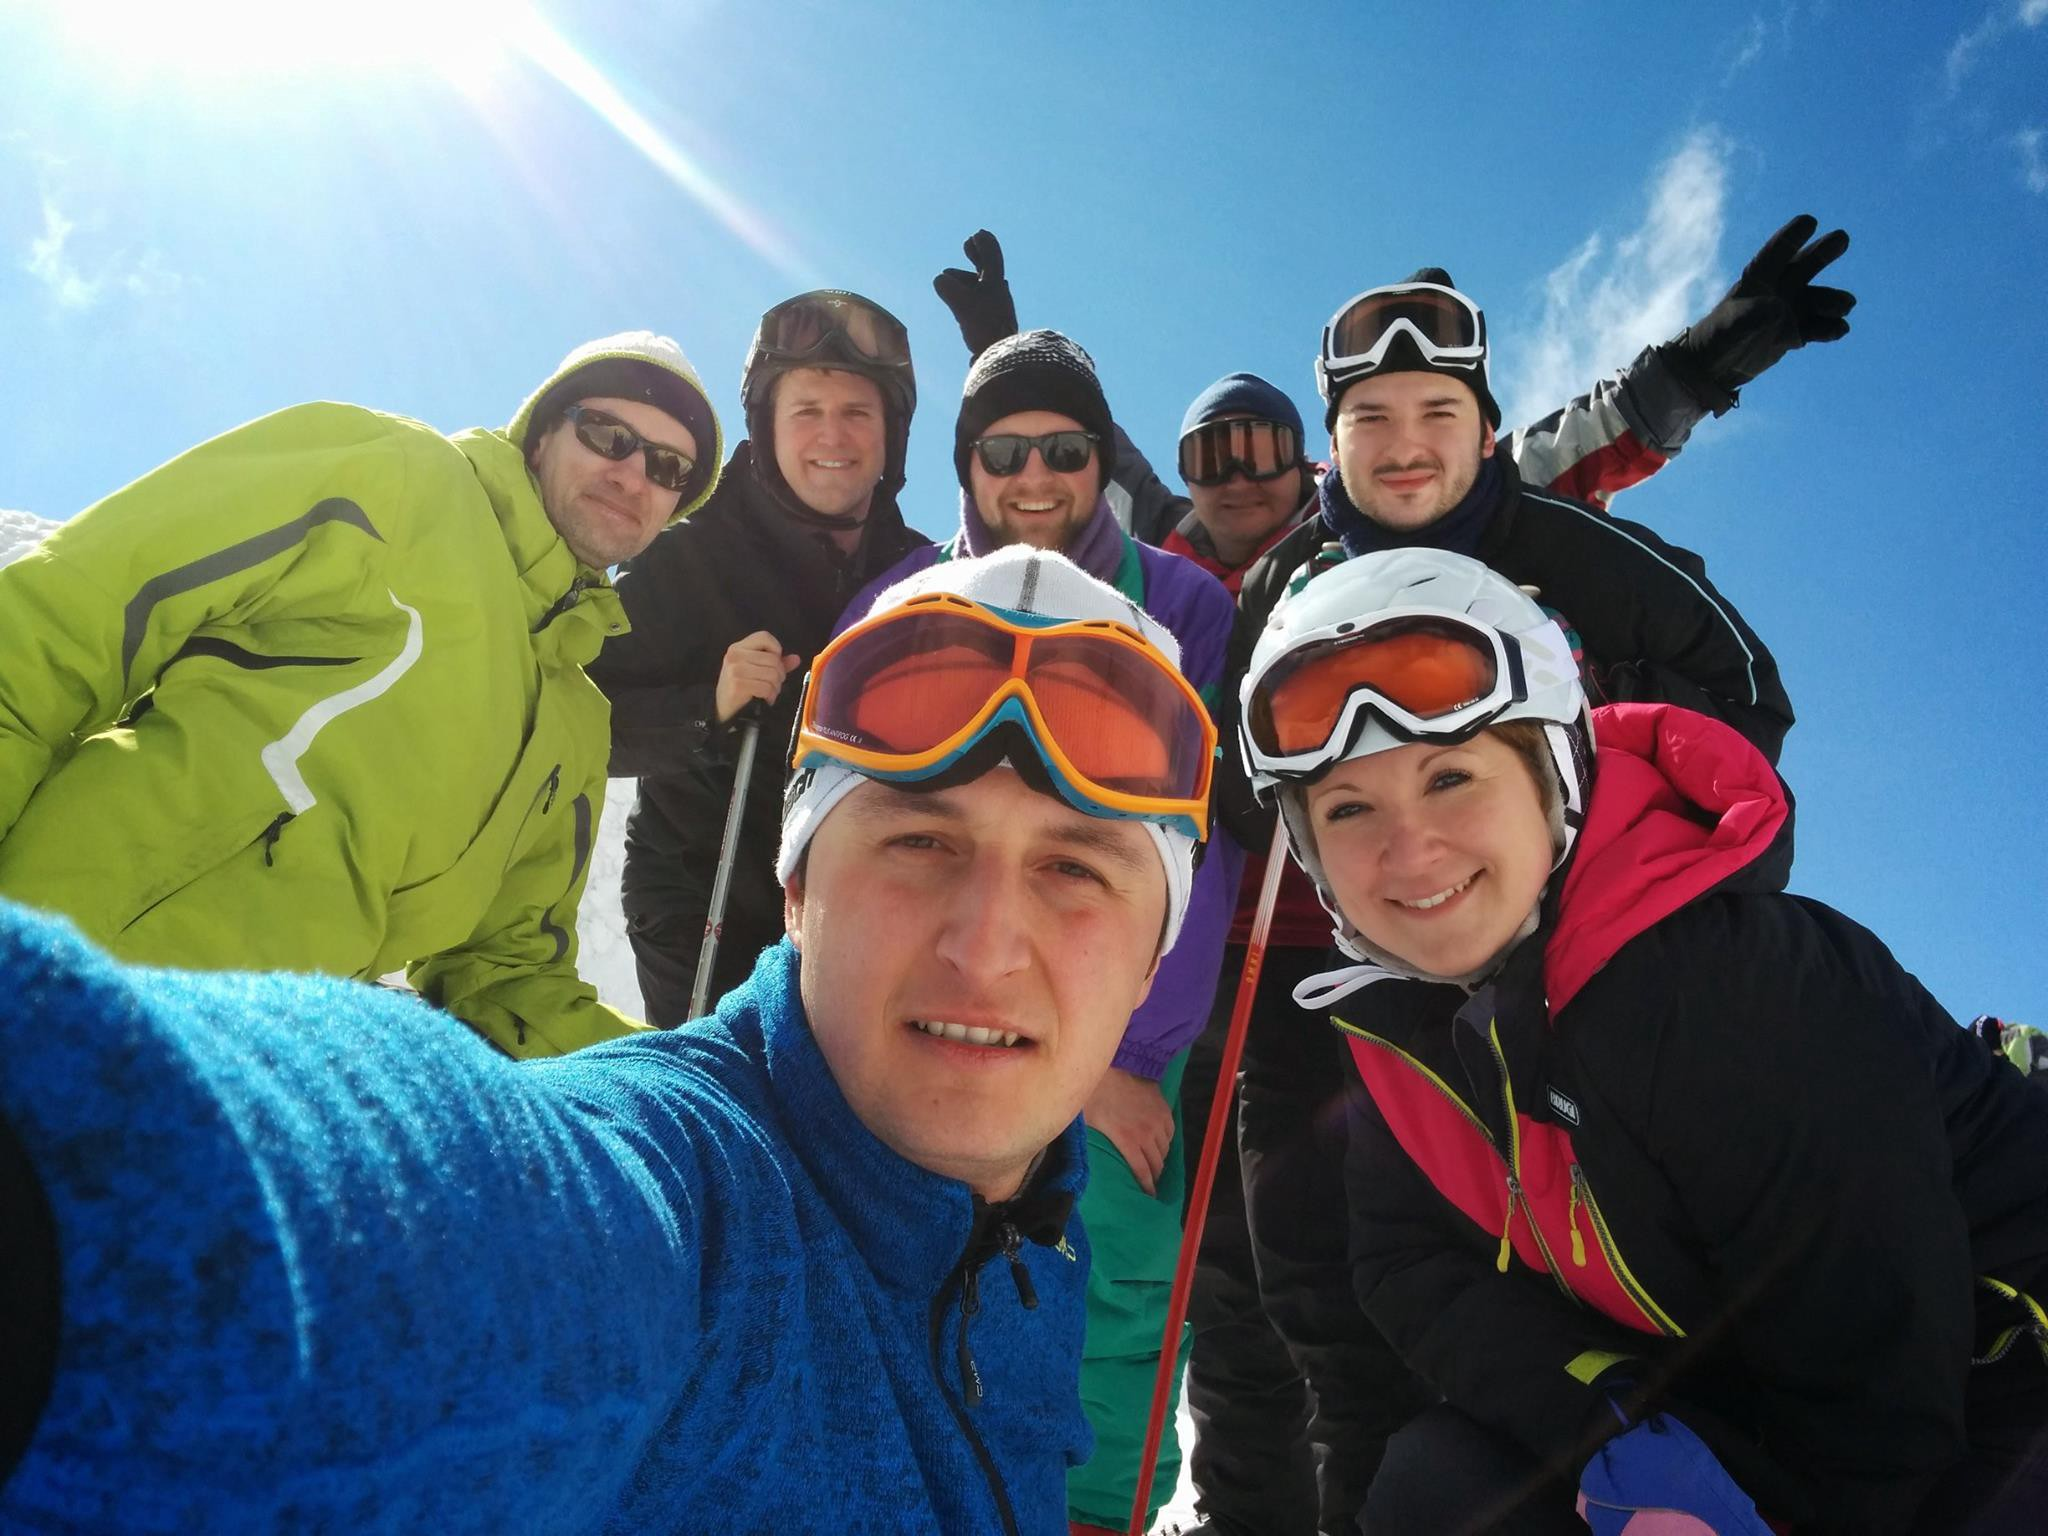 Personal team selfie at the top of Mt Bjelašnica, Sarajevo—the home of the 1984 Winter Olympics men's downhill run.